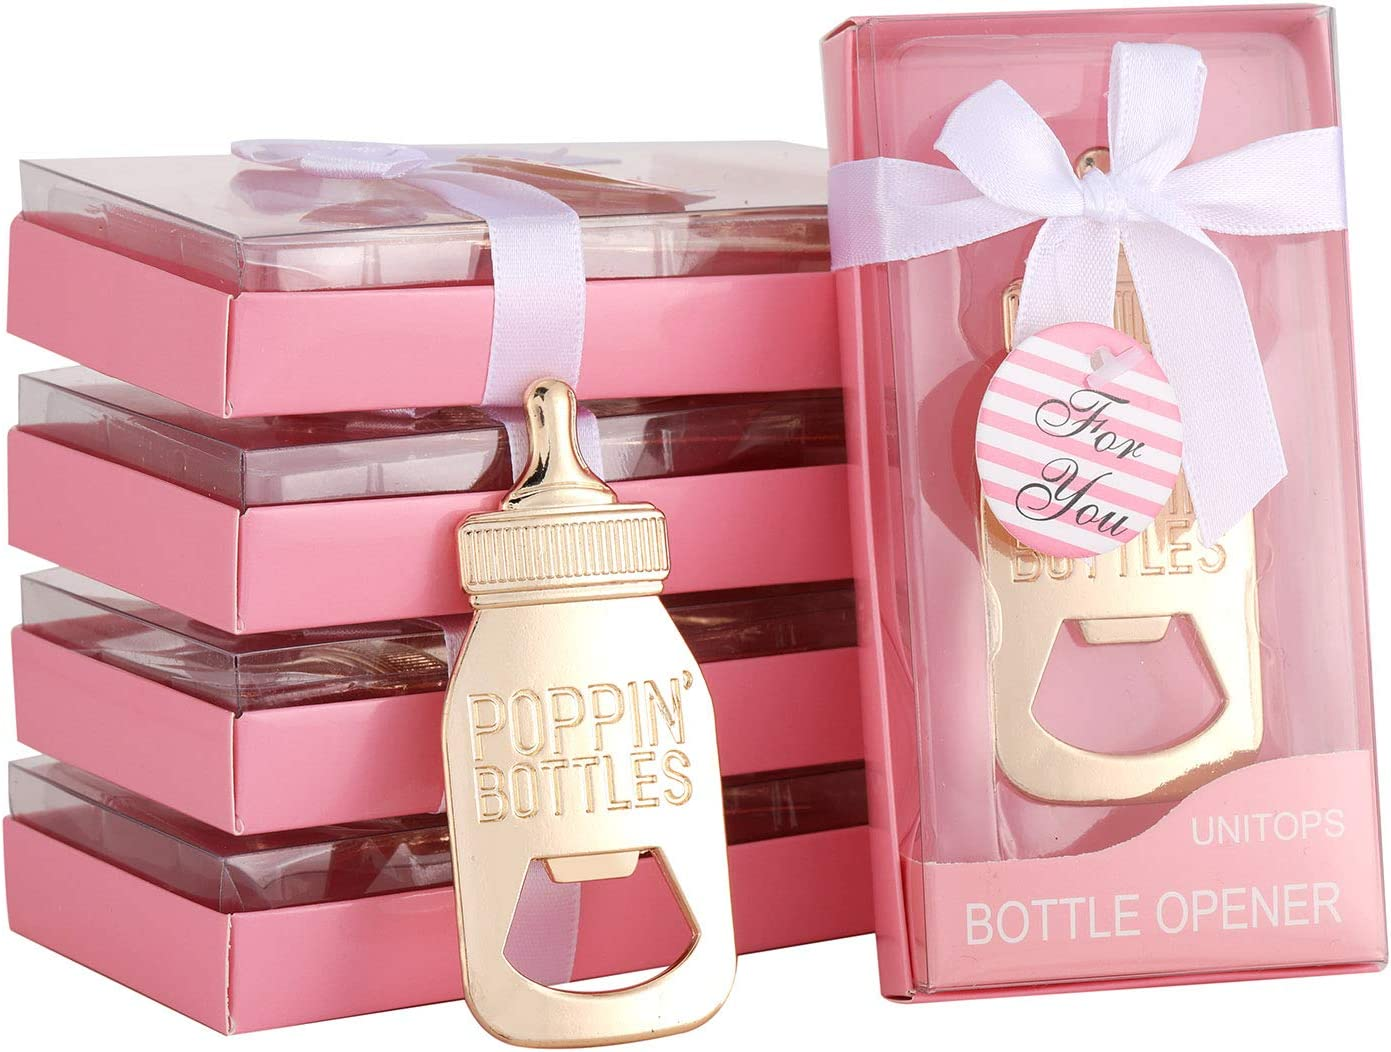 48Pcs Baby Shower Bottle Party Favors Shaped Online limited product Opener Seasonal Wrap Introduction